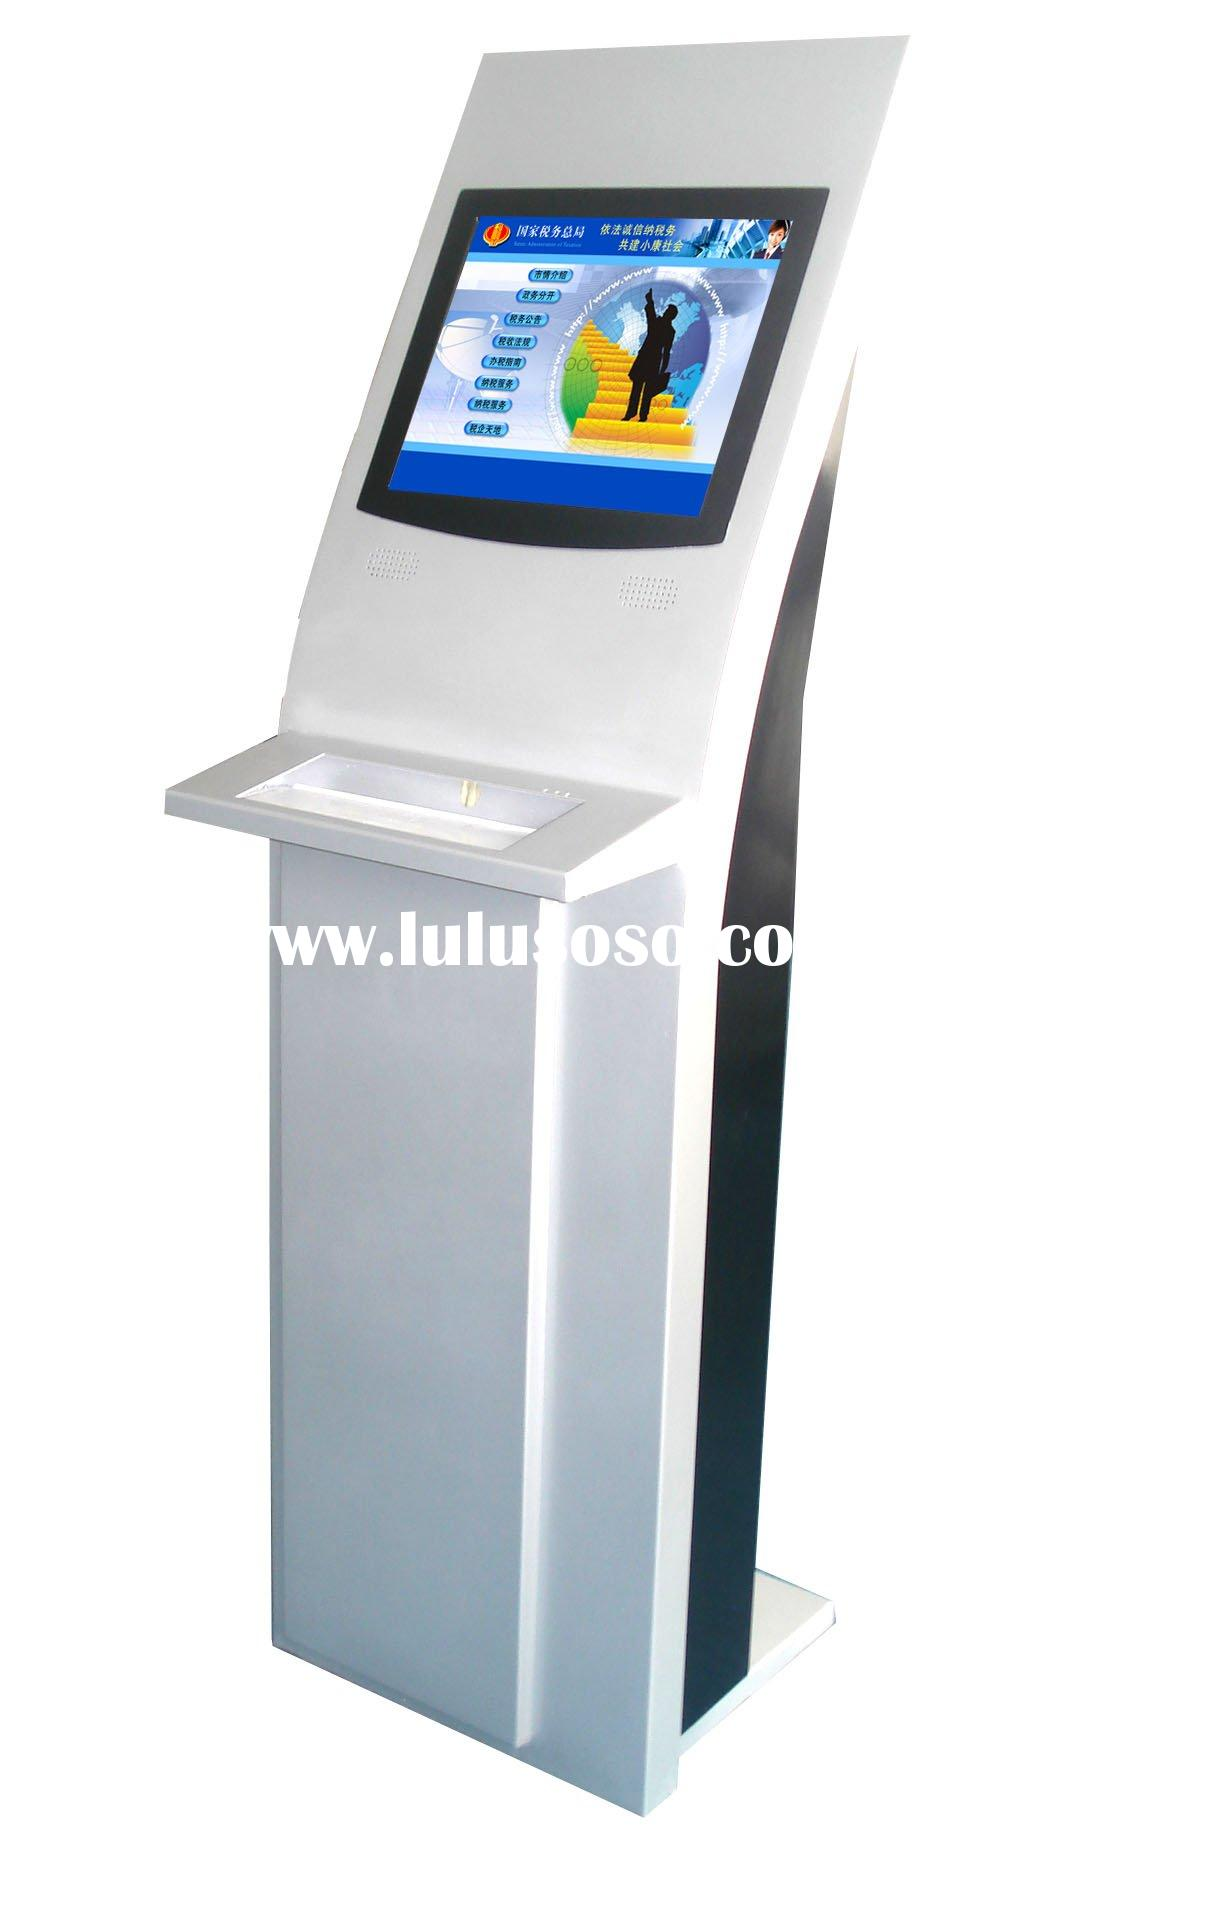 ATM kiosk with webcam/ bluetooth/ 3G/ Cash receiver/ Fiscal register/ Queuing system